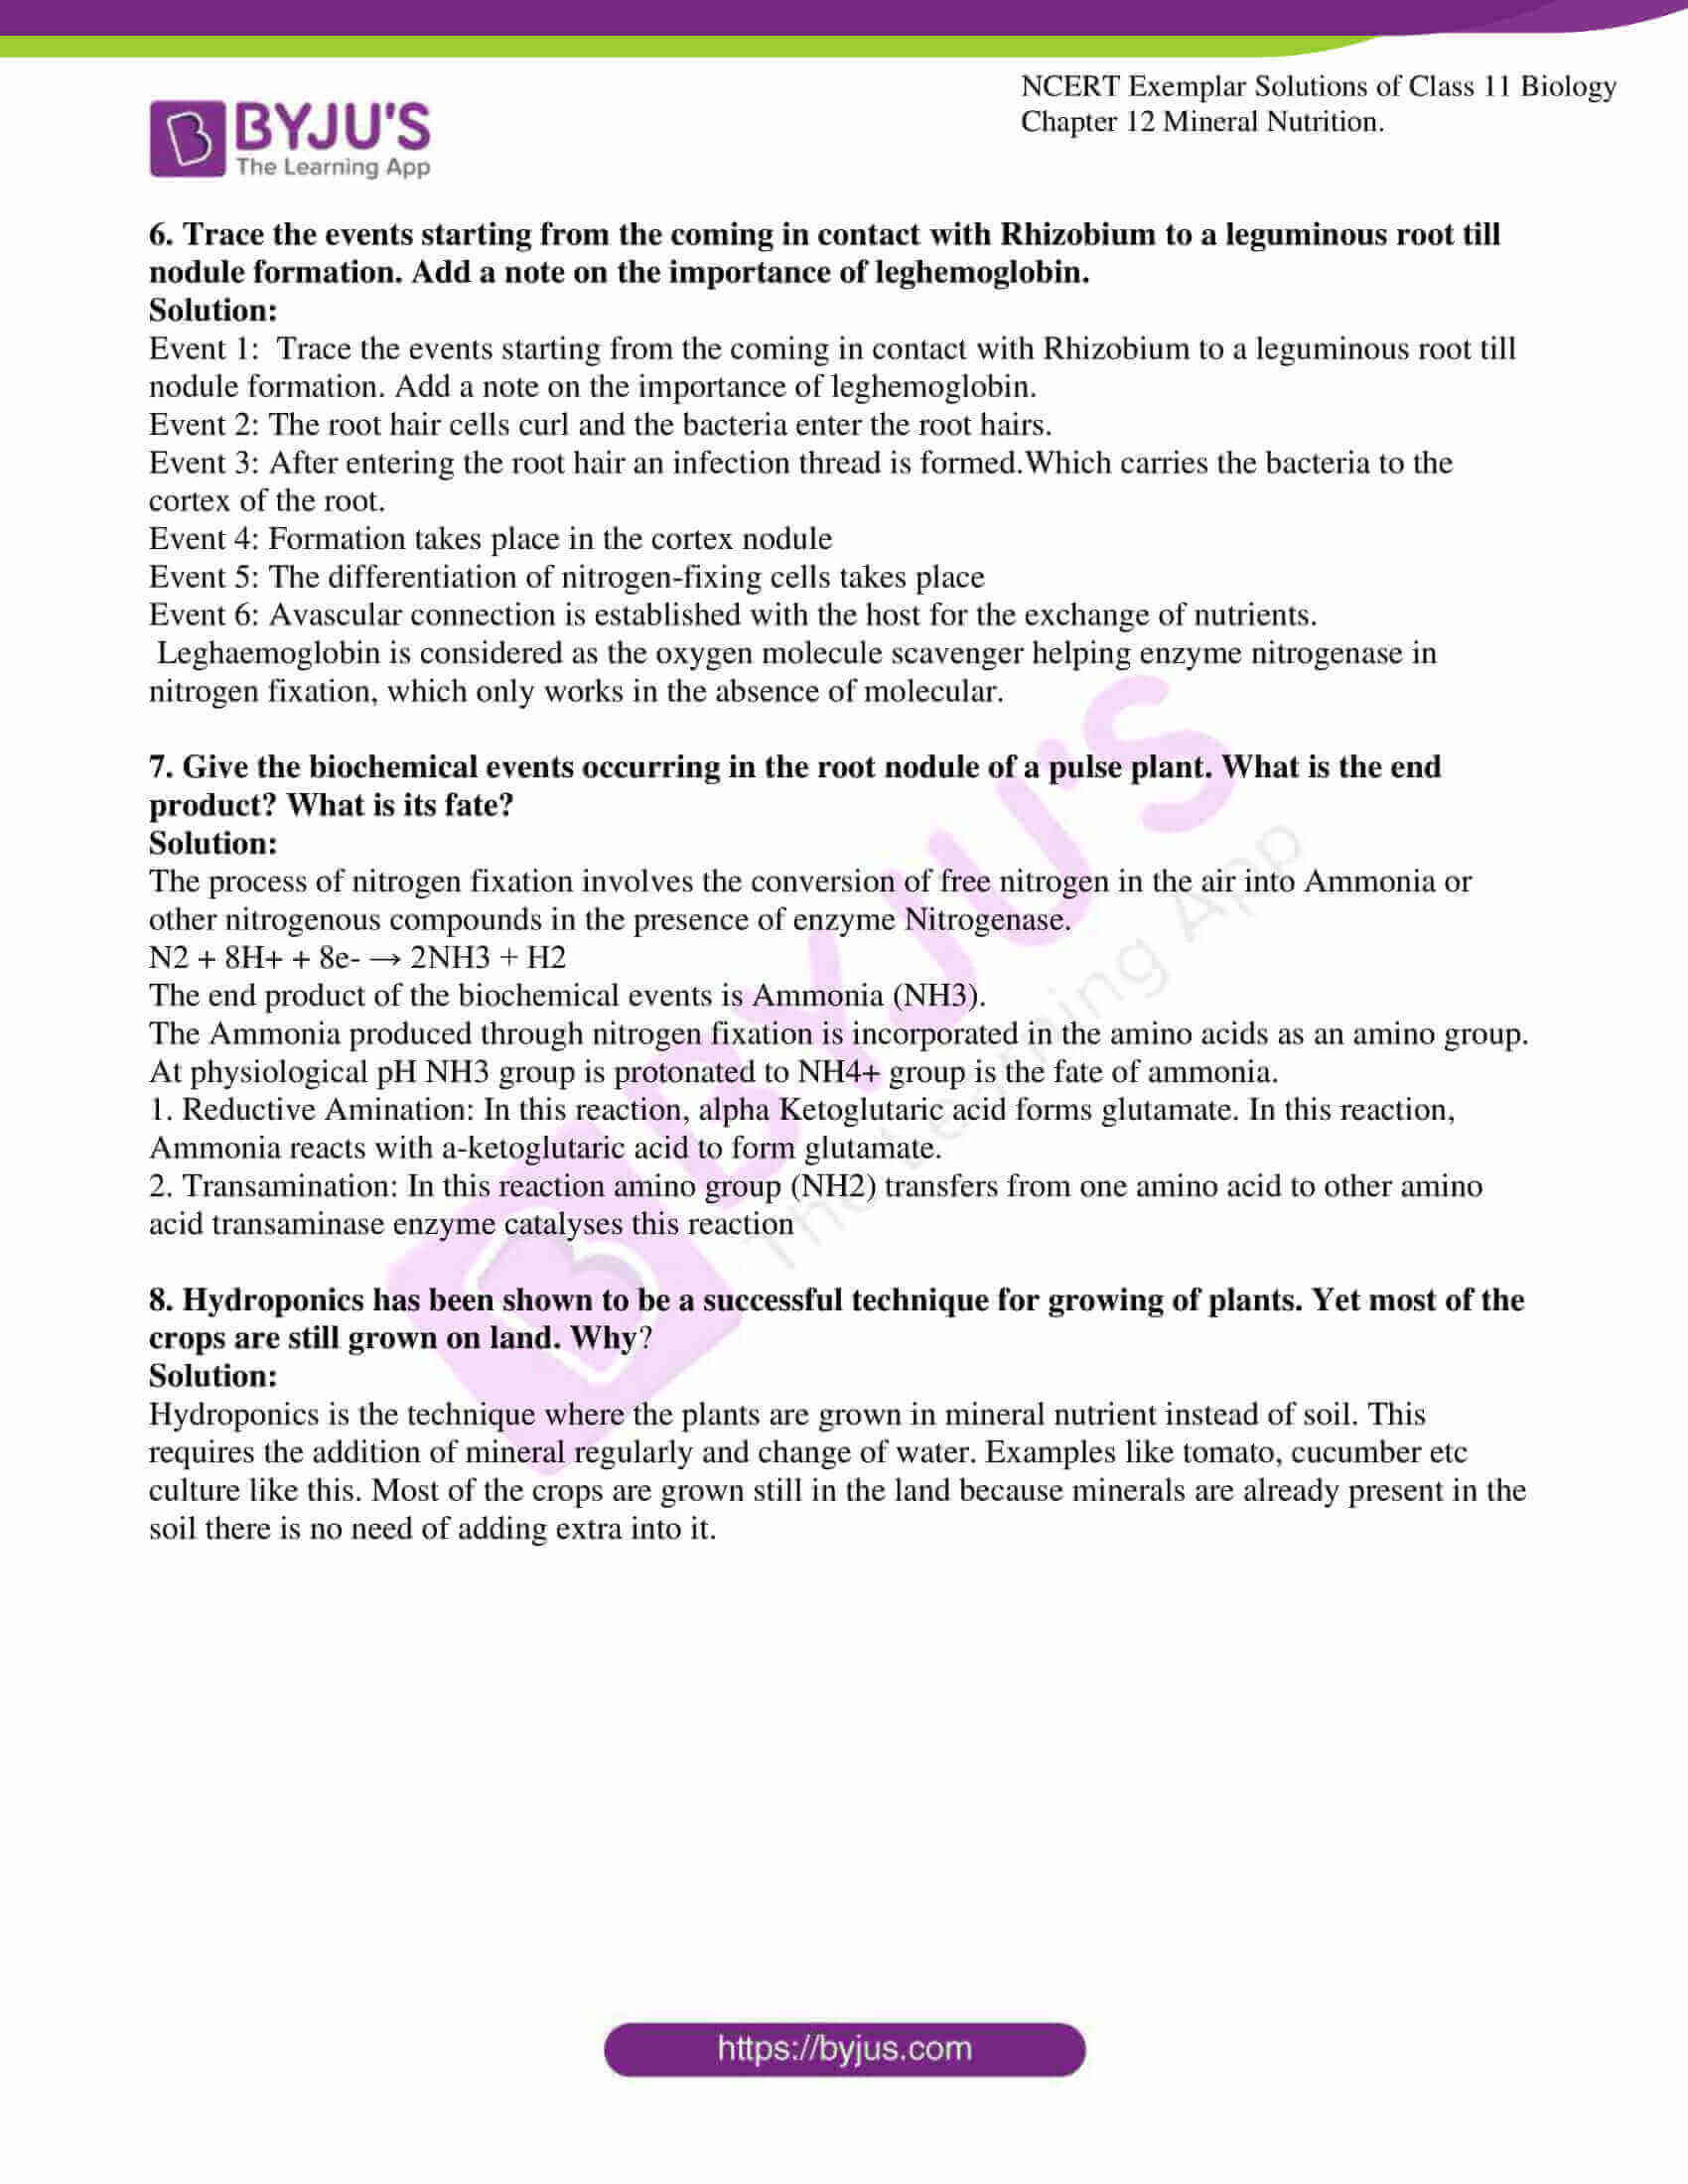 ncert exemplar solutions class 11 biology chapter 12 8